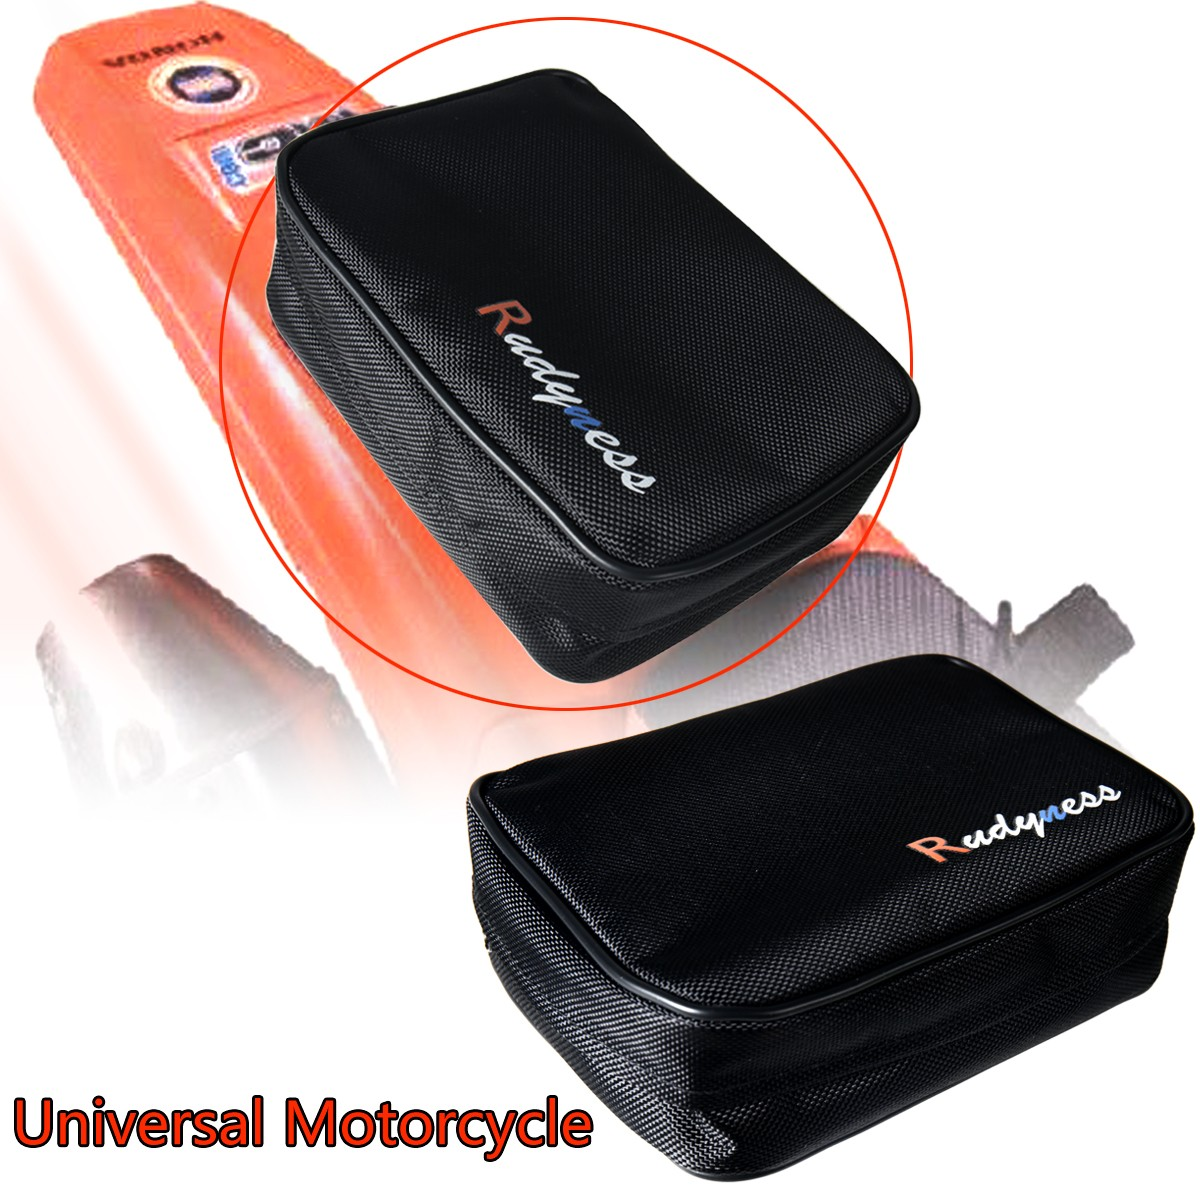 Rear Black Fender Pack Tool Bag Fit For ATV KTM CRF Dirt Bike Enduro&Universal Motorcycle Fender